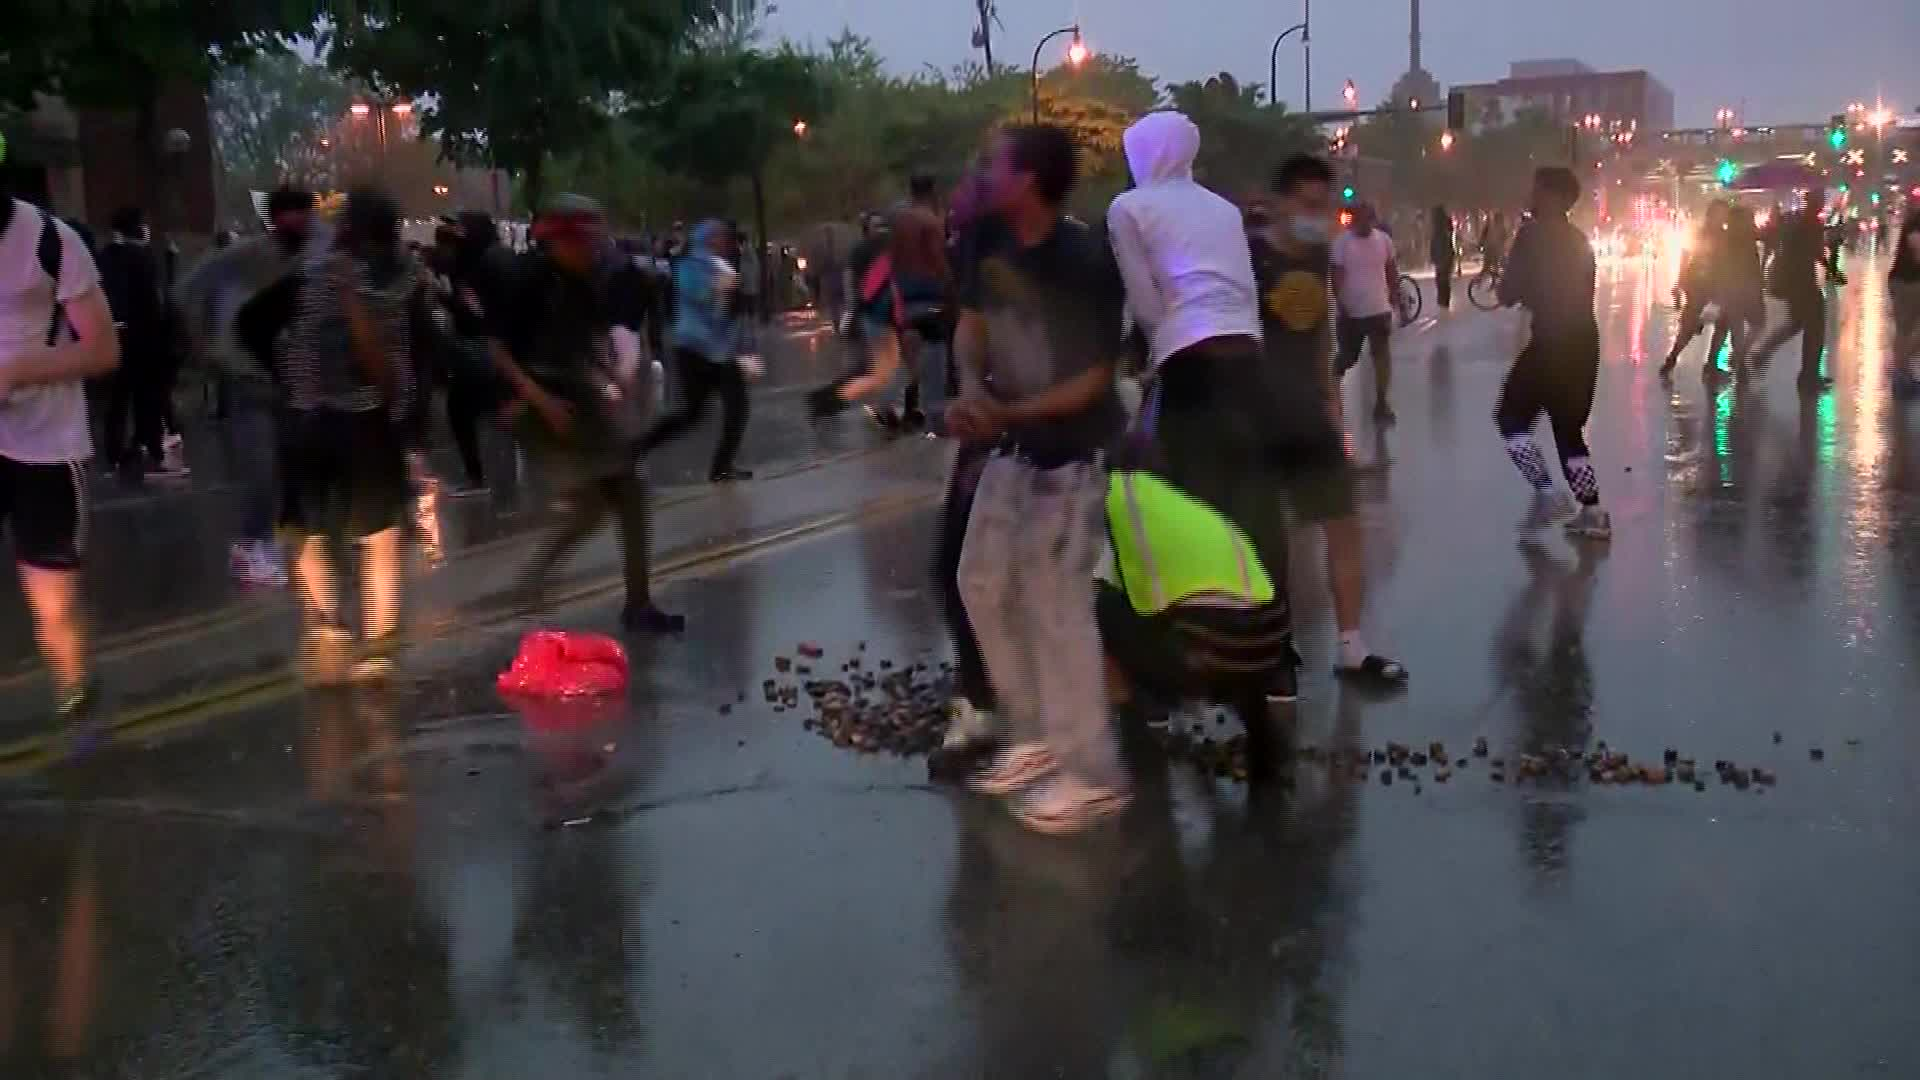 Police spray tear gas as hundreds protest after George Floyd's arrest, death in Minneapolis